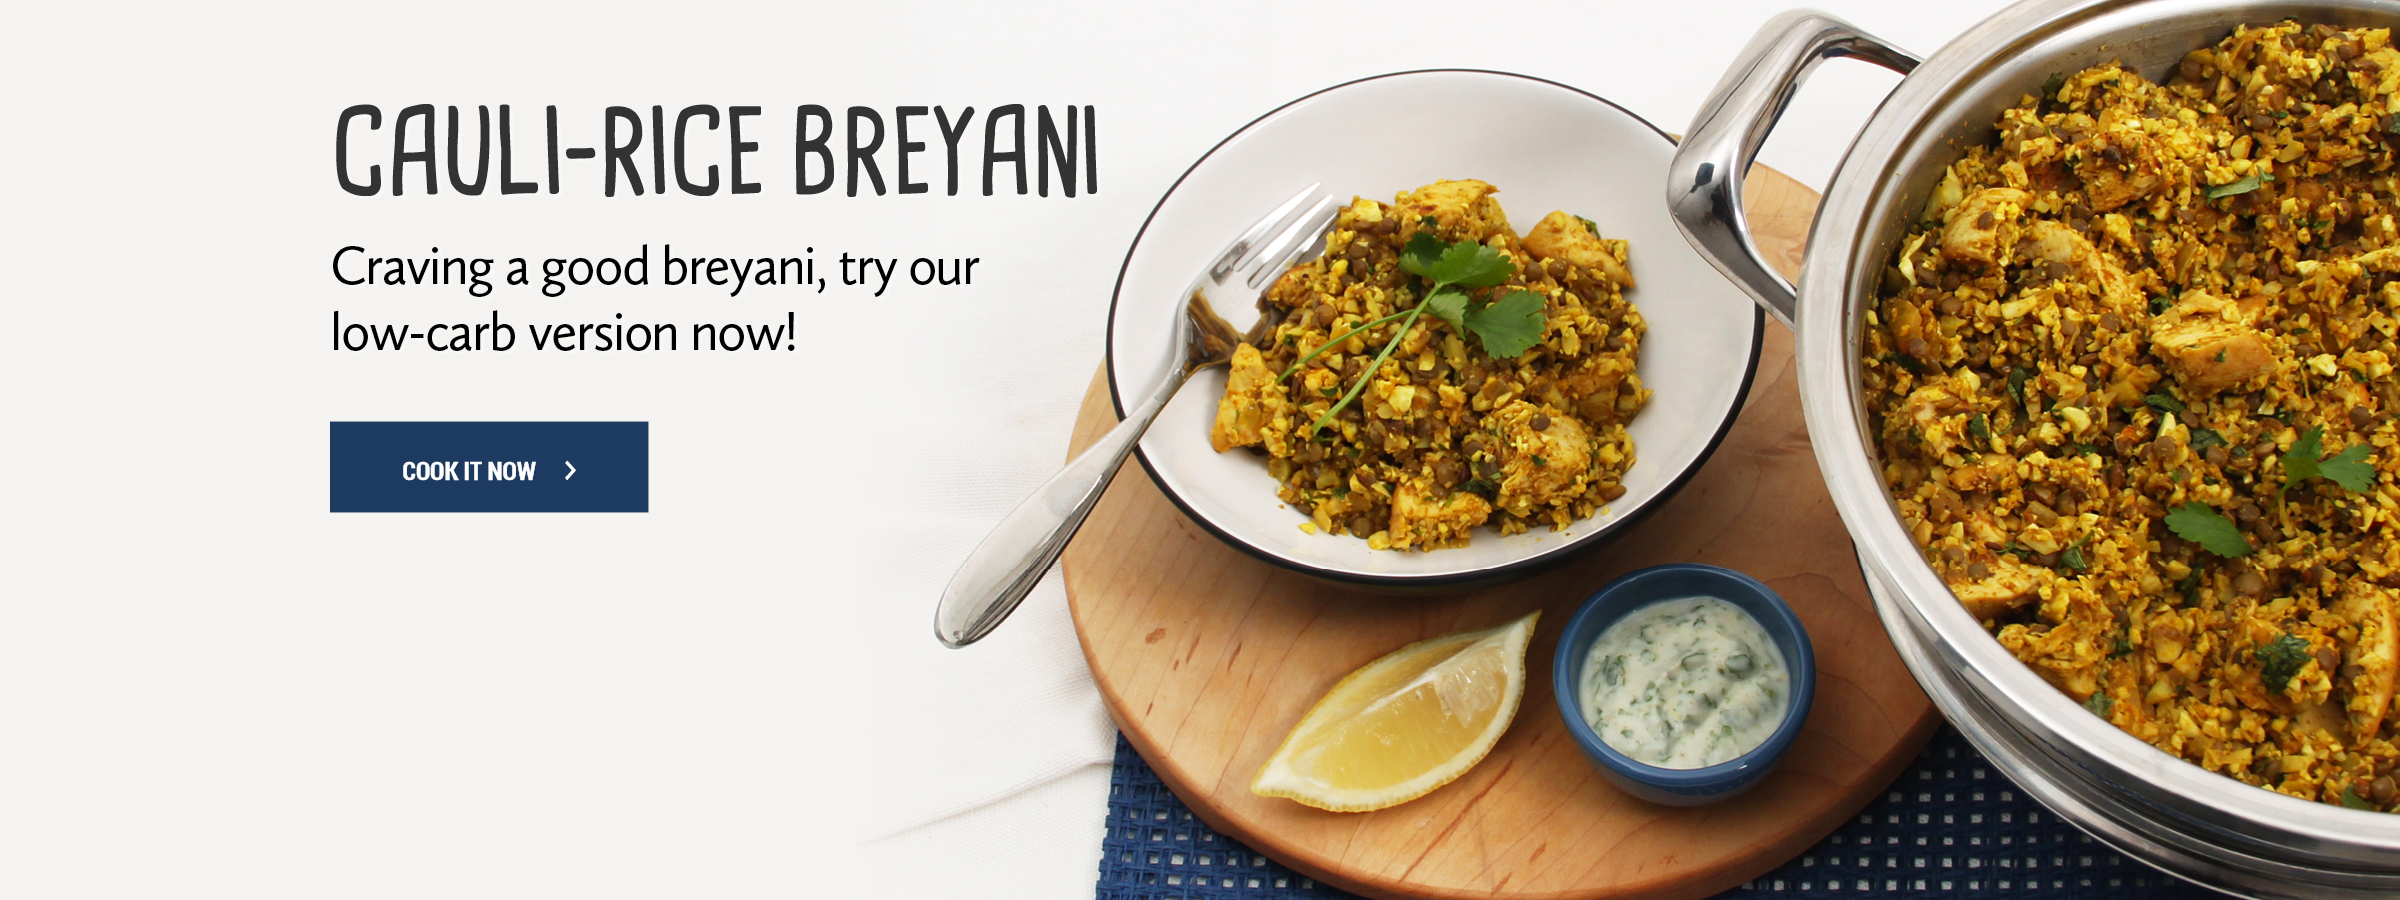 Cauliflower Rice Breyani